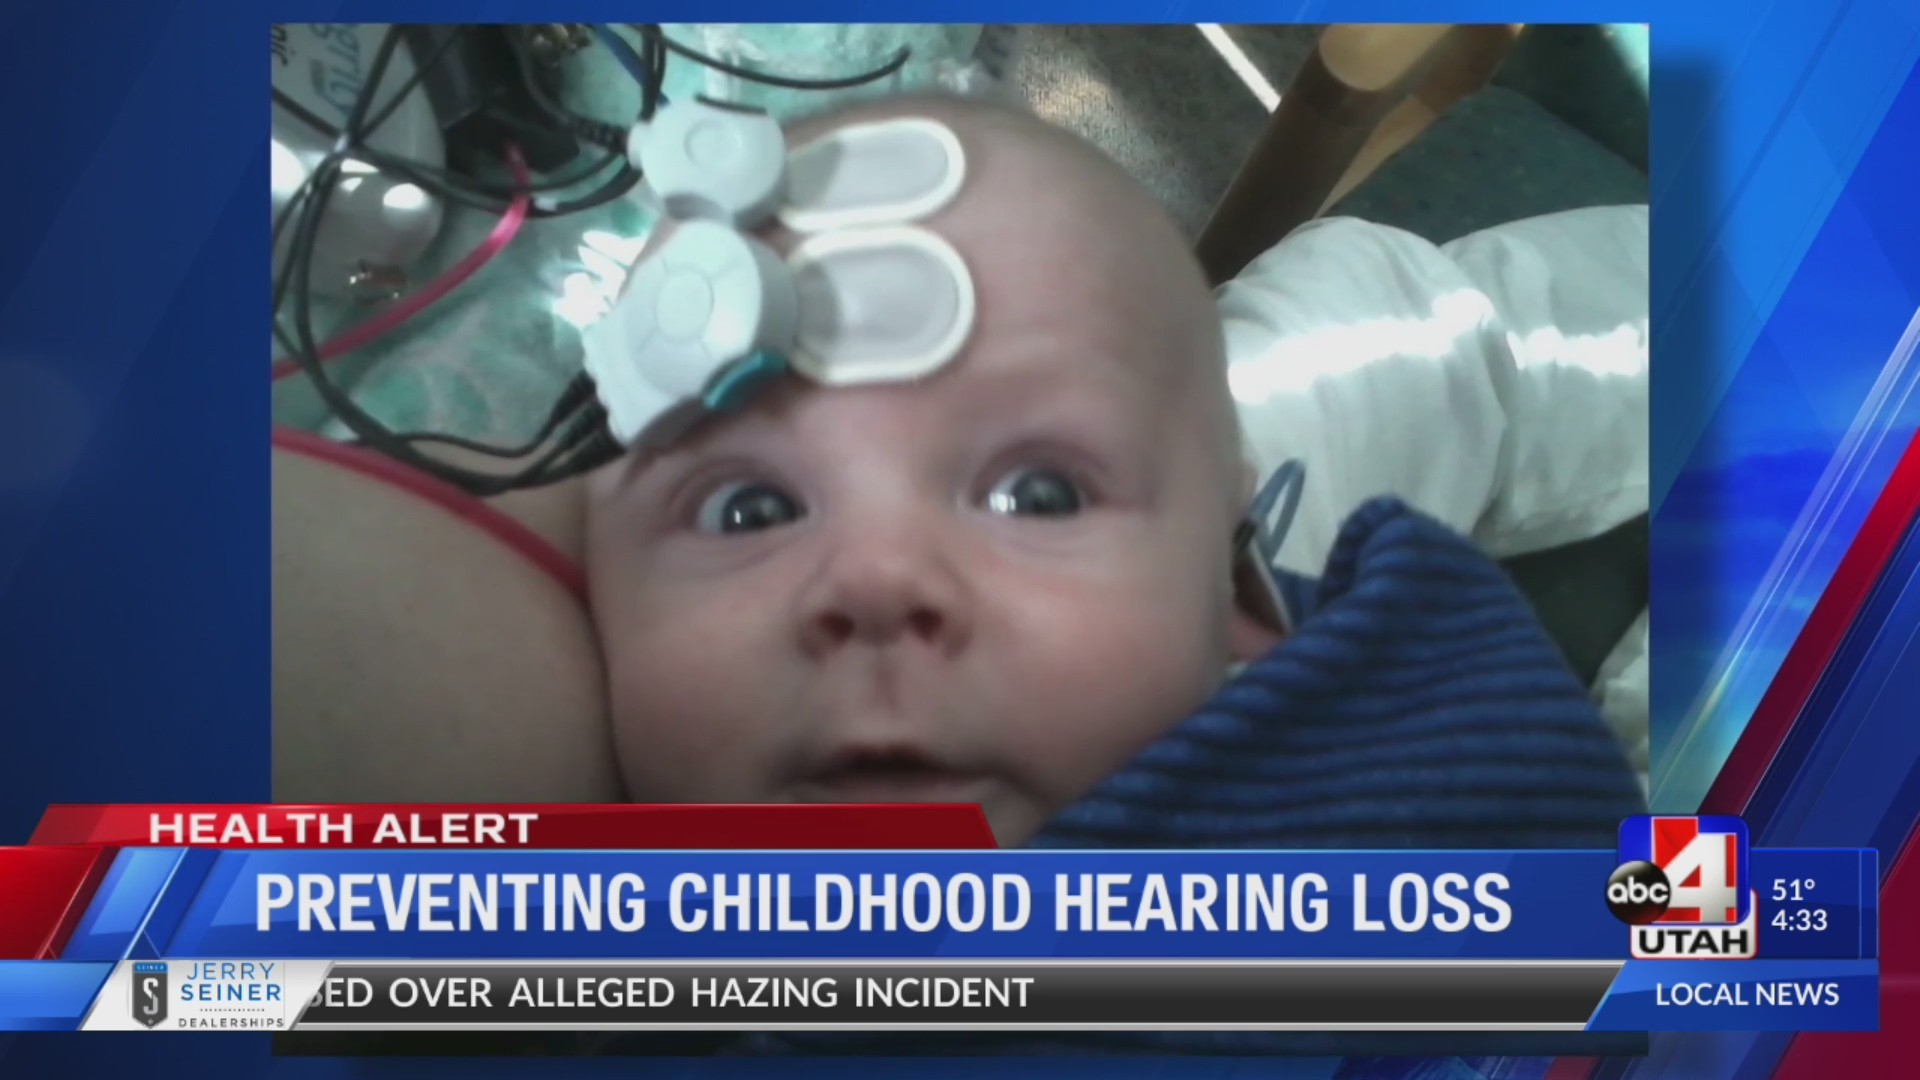 PREVENTING CHILDHOOD HEARING LOSS